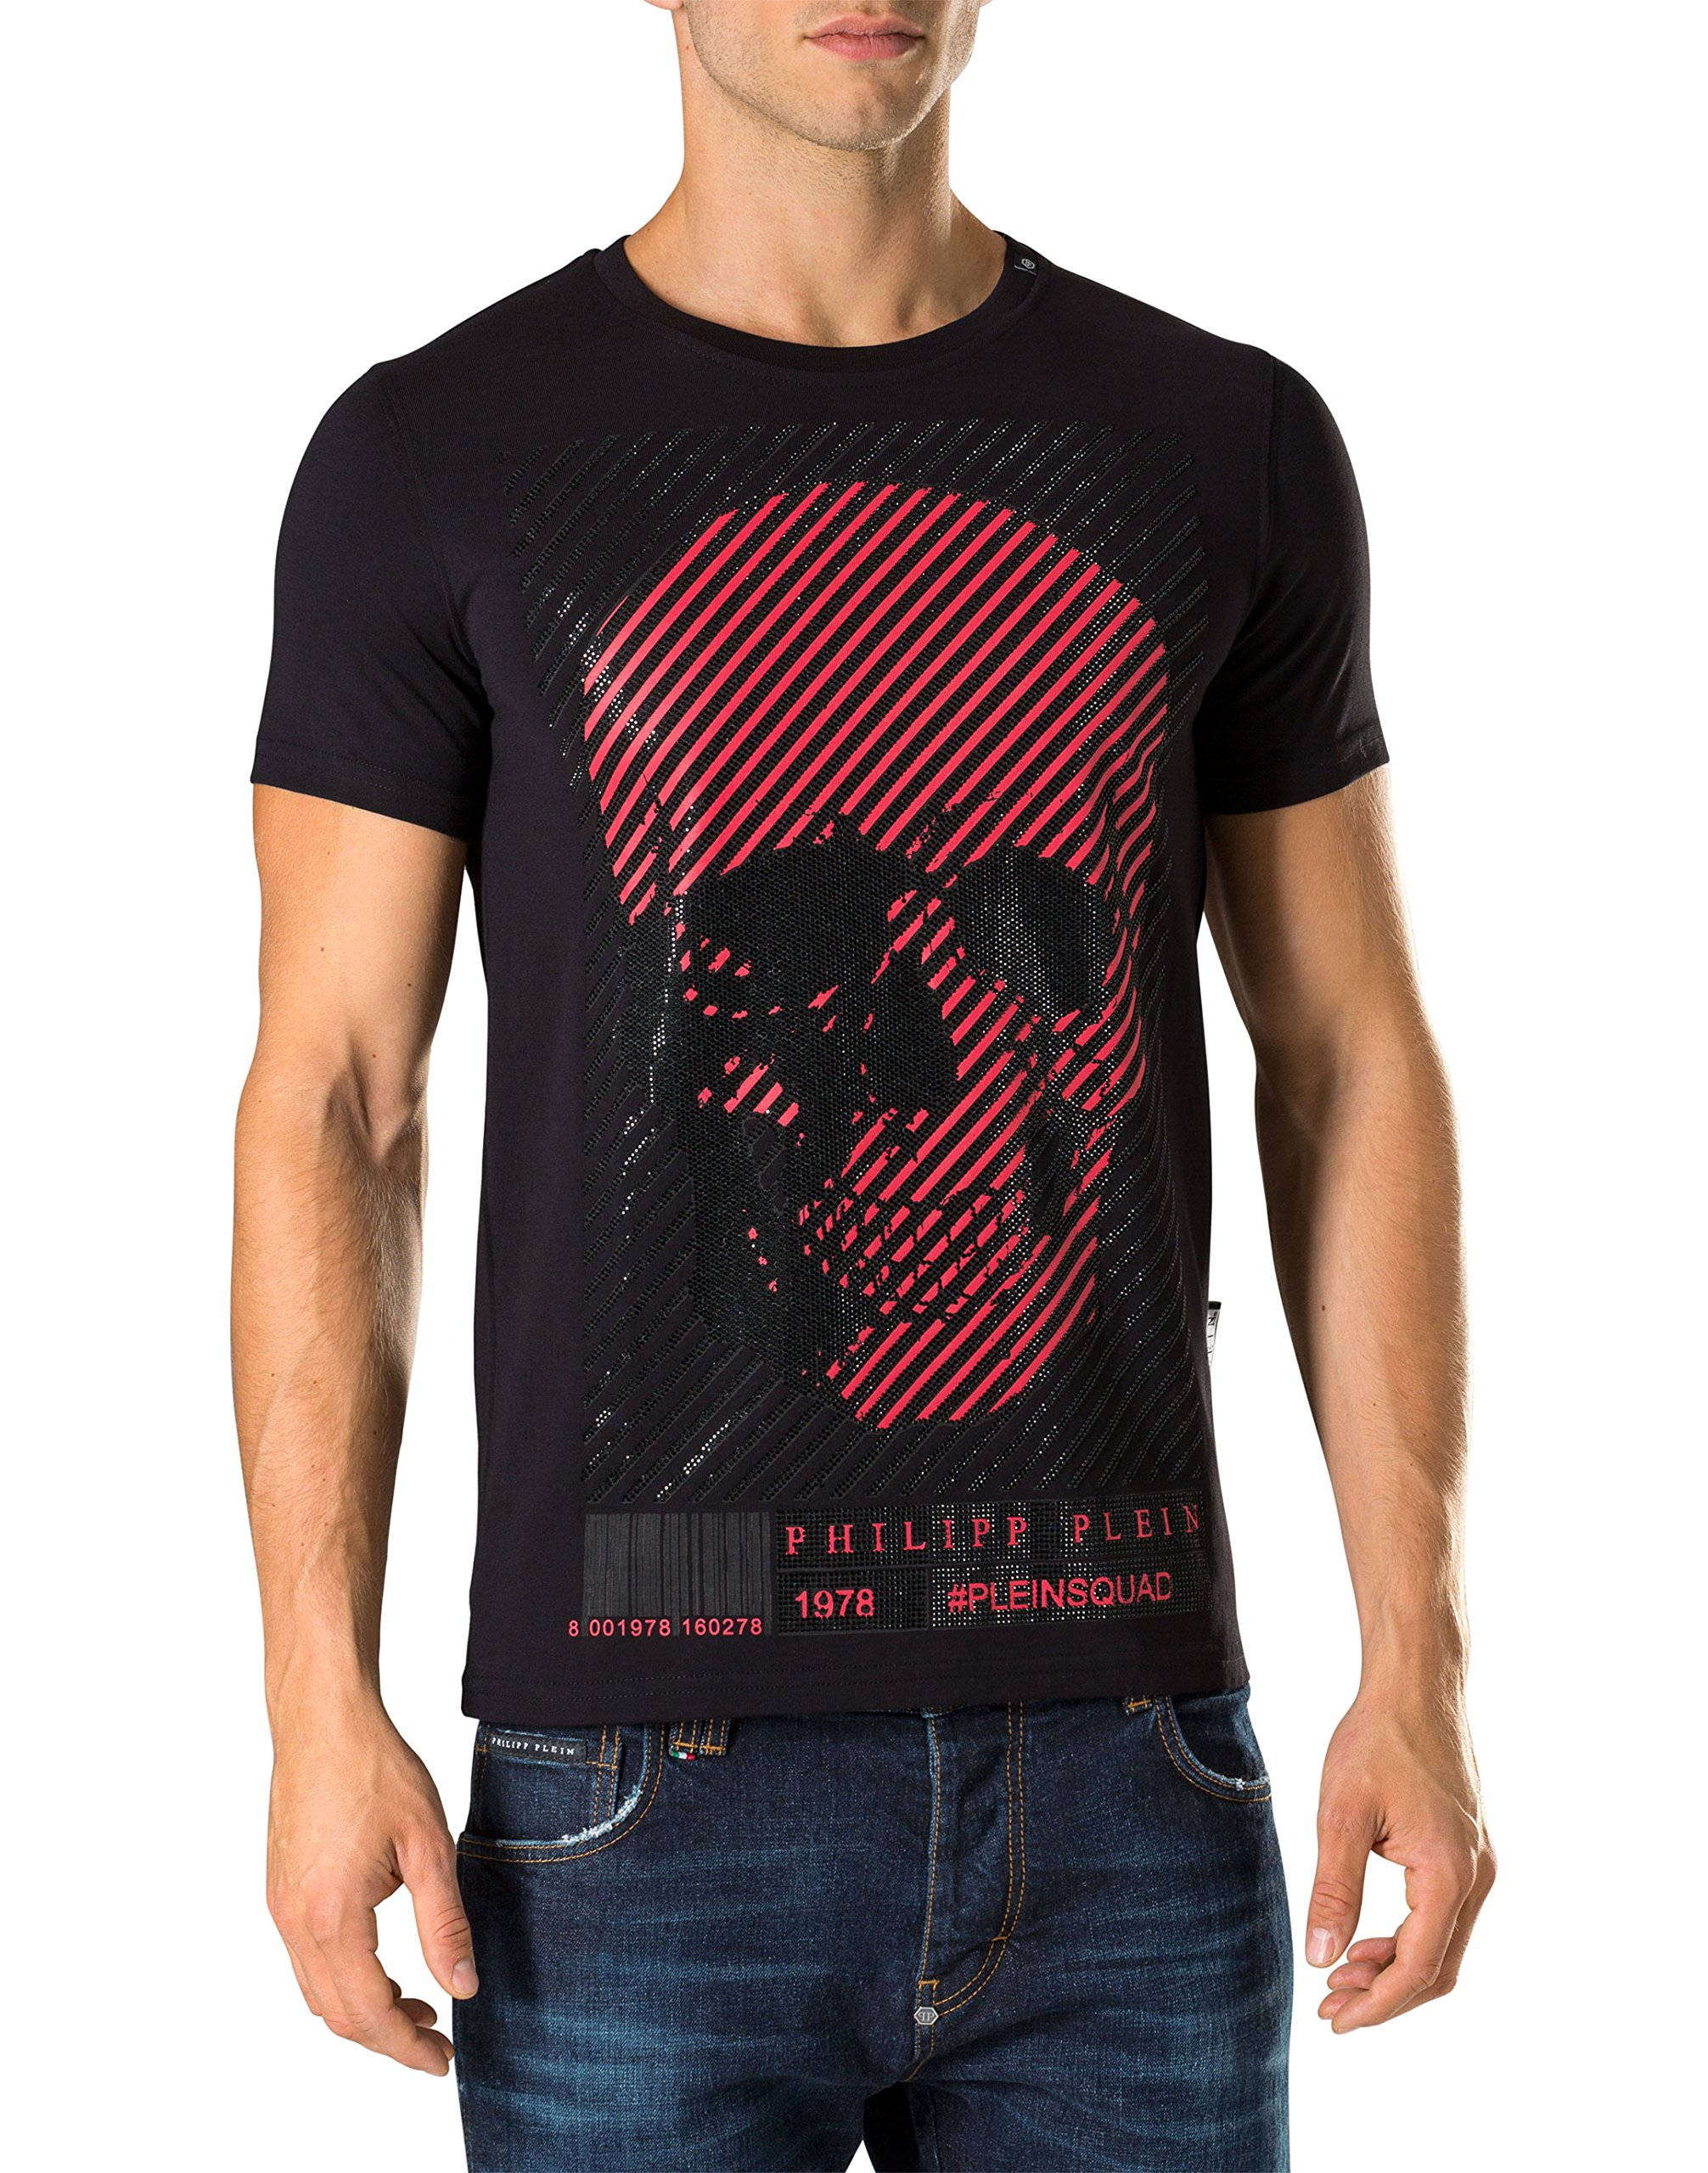 PHILIPP PLEIN Men's T-shirt Bad - black, M by Philipp Plein